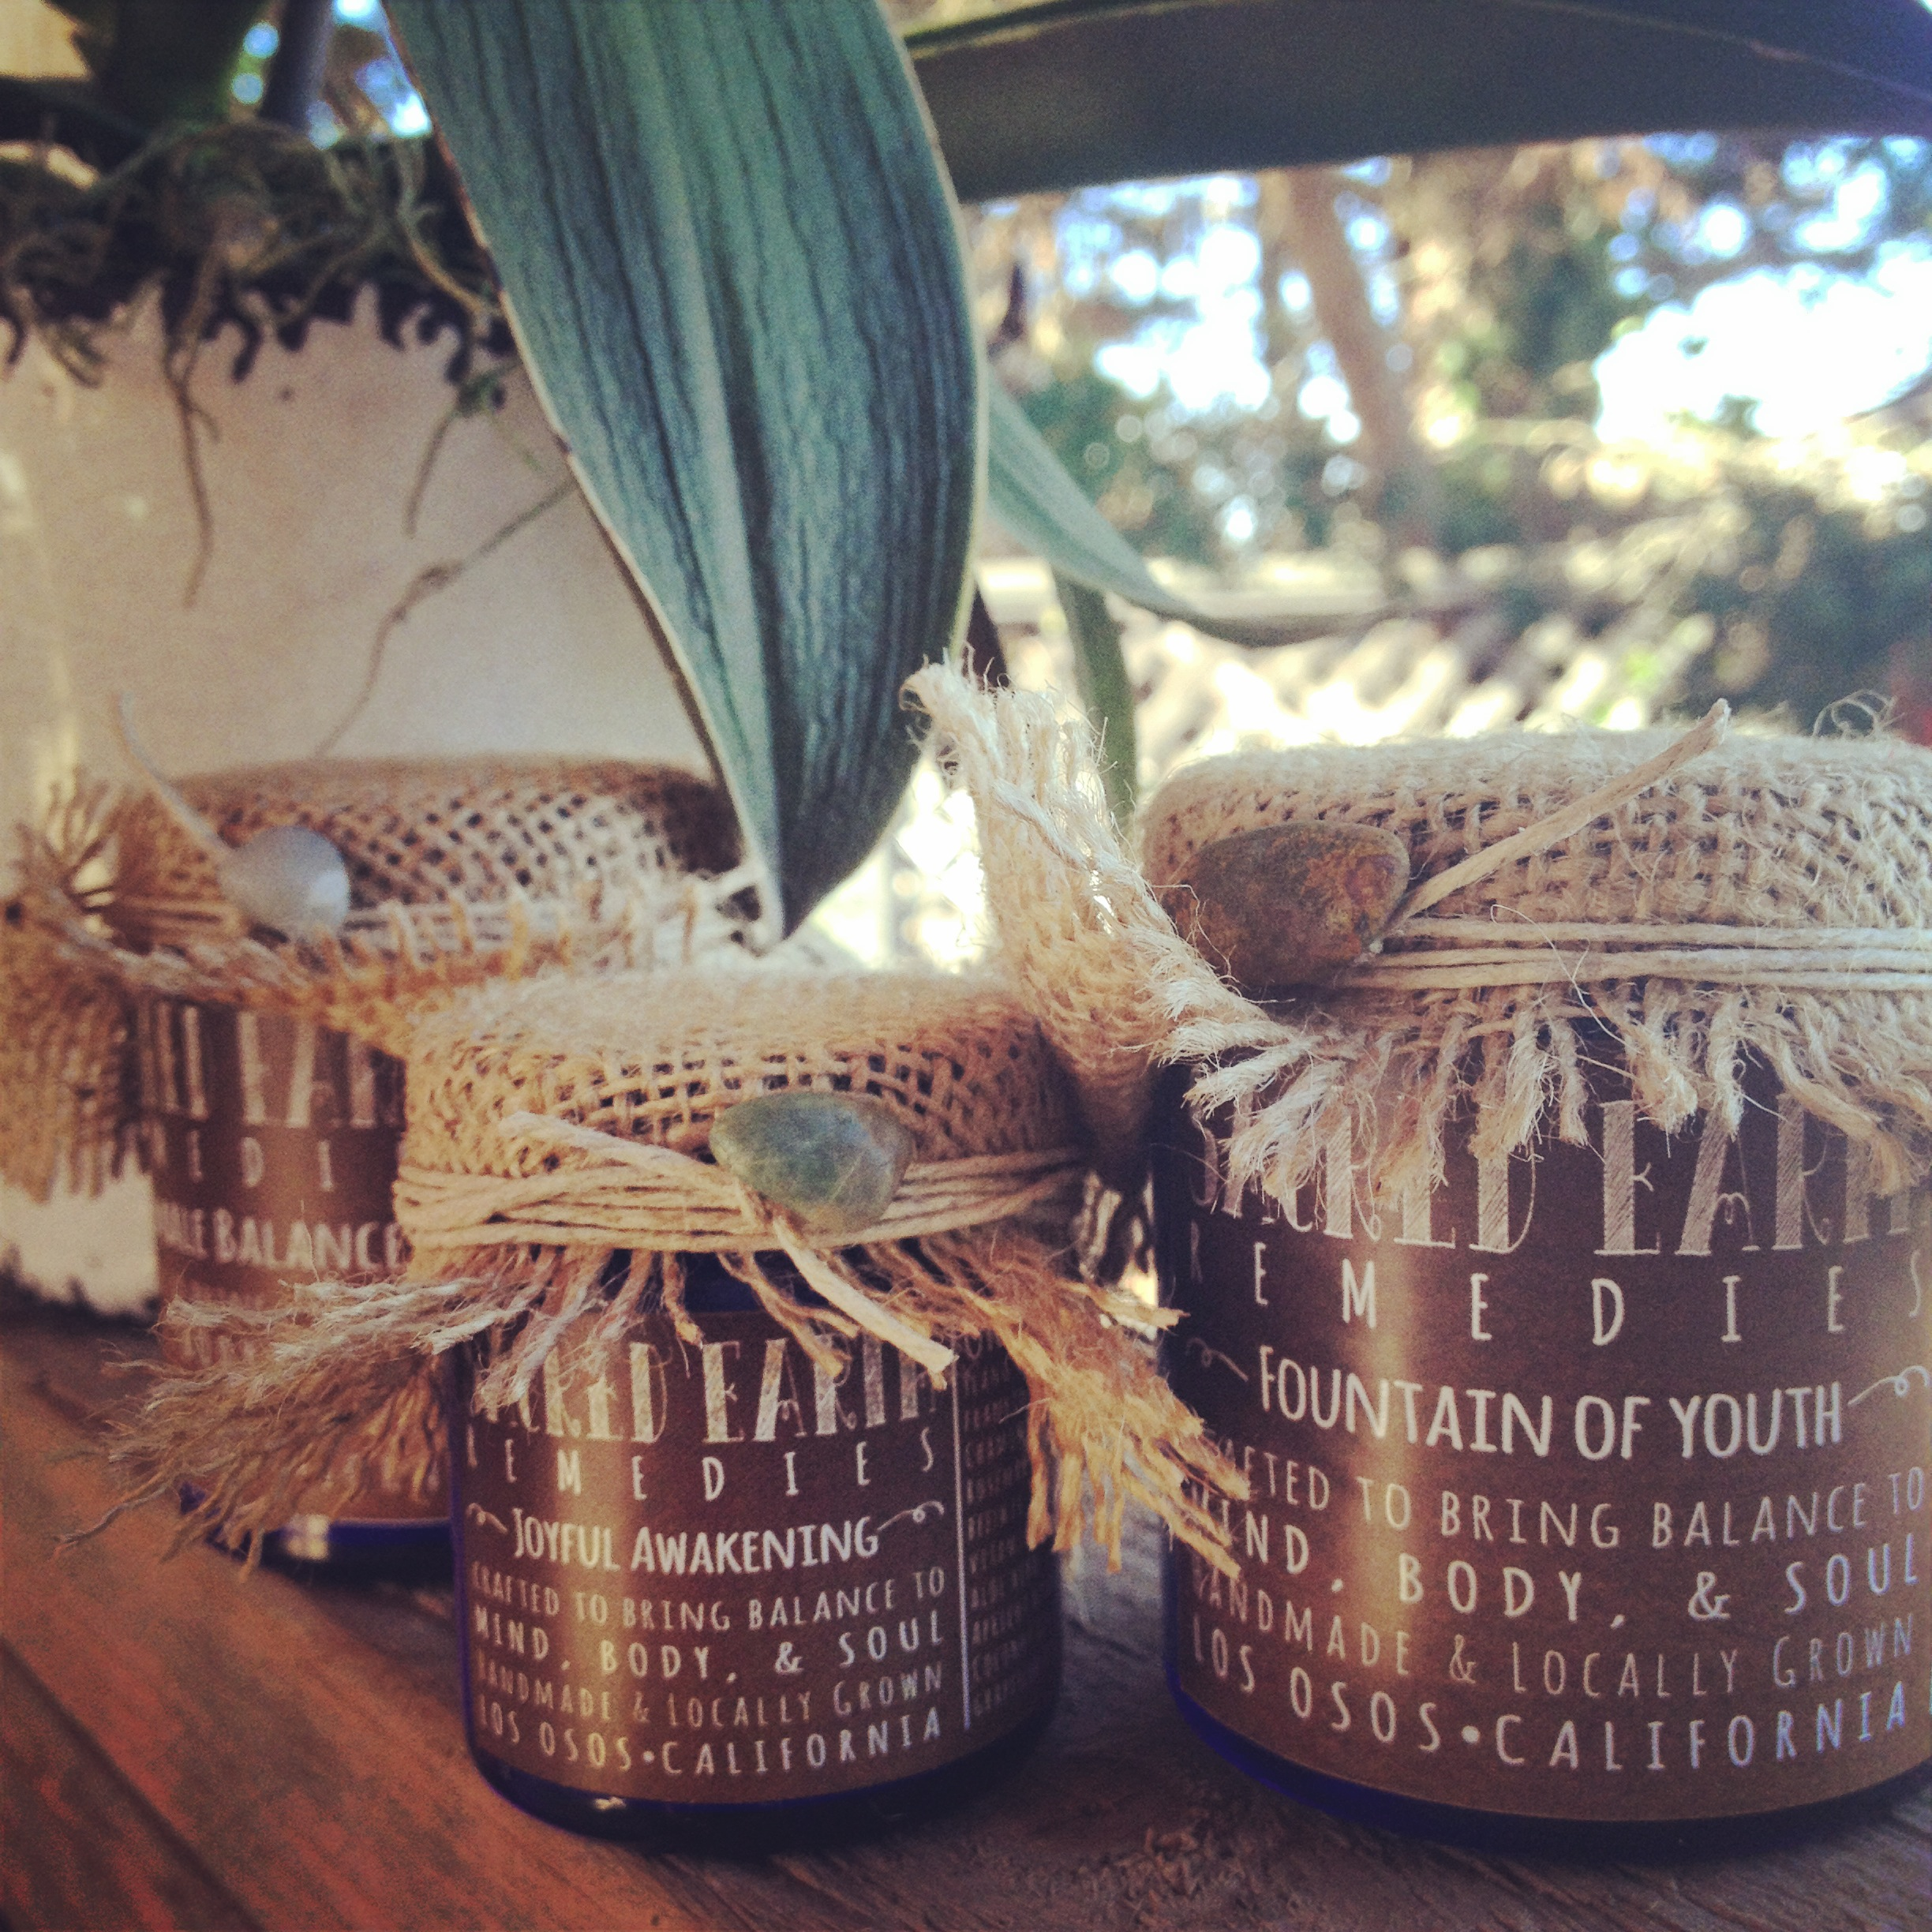 All natural, organic, handmade, & locally grown. Each cream is packed with the best ingredients your skin deserves.